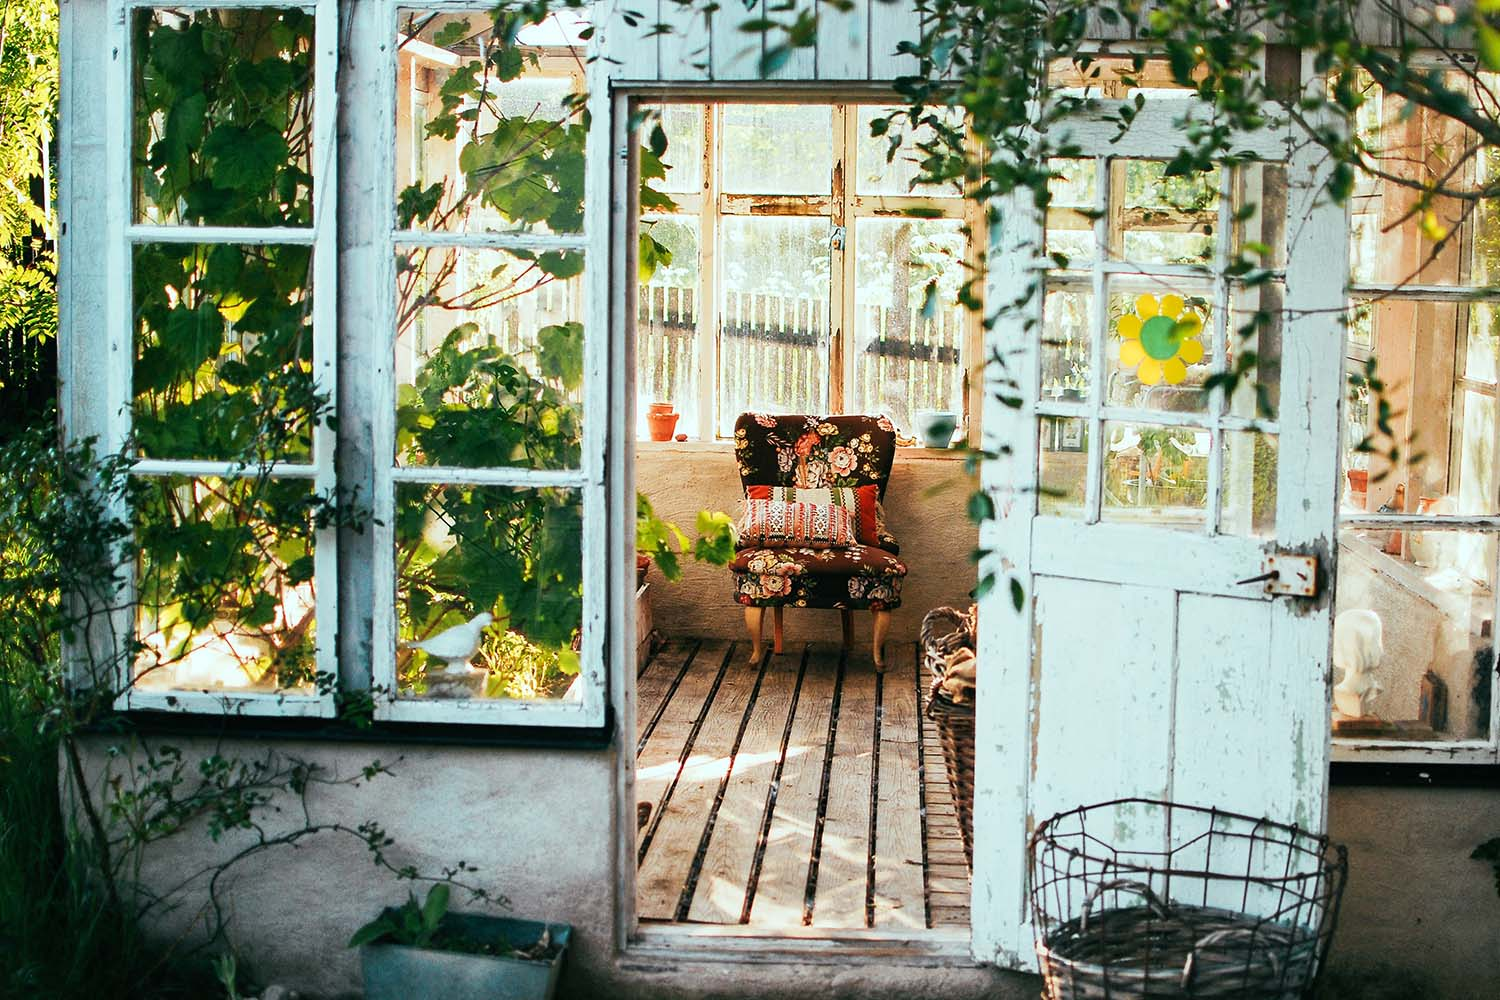 How to Turn Your Backyard into a Meditation Space